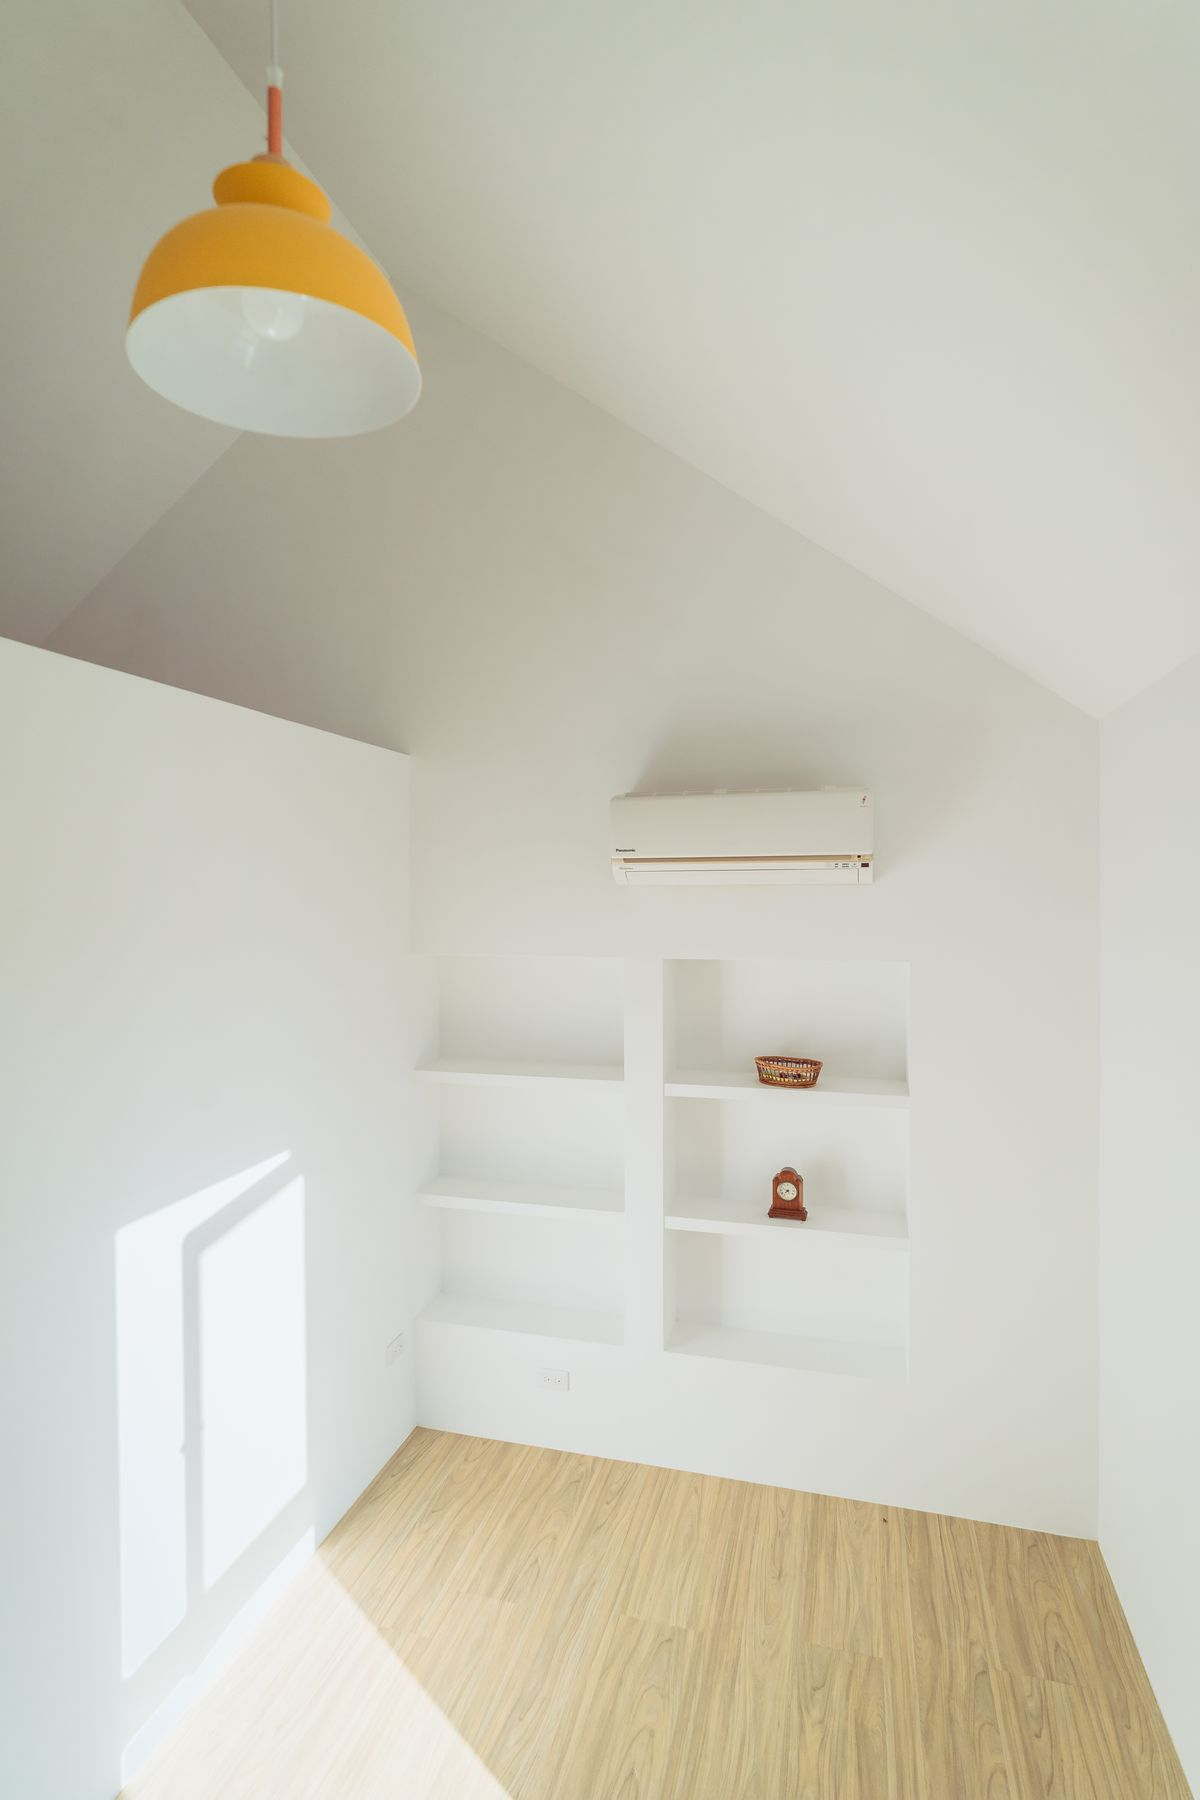 A room with white walls and pale wood floors.